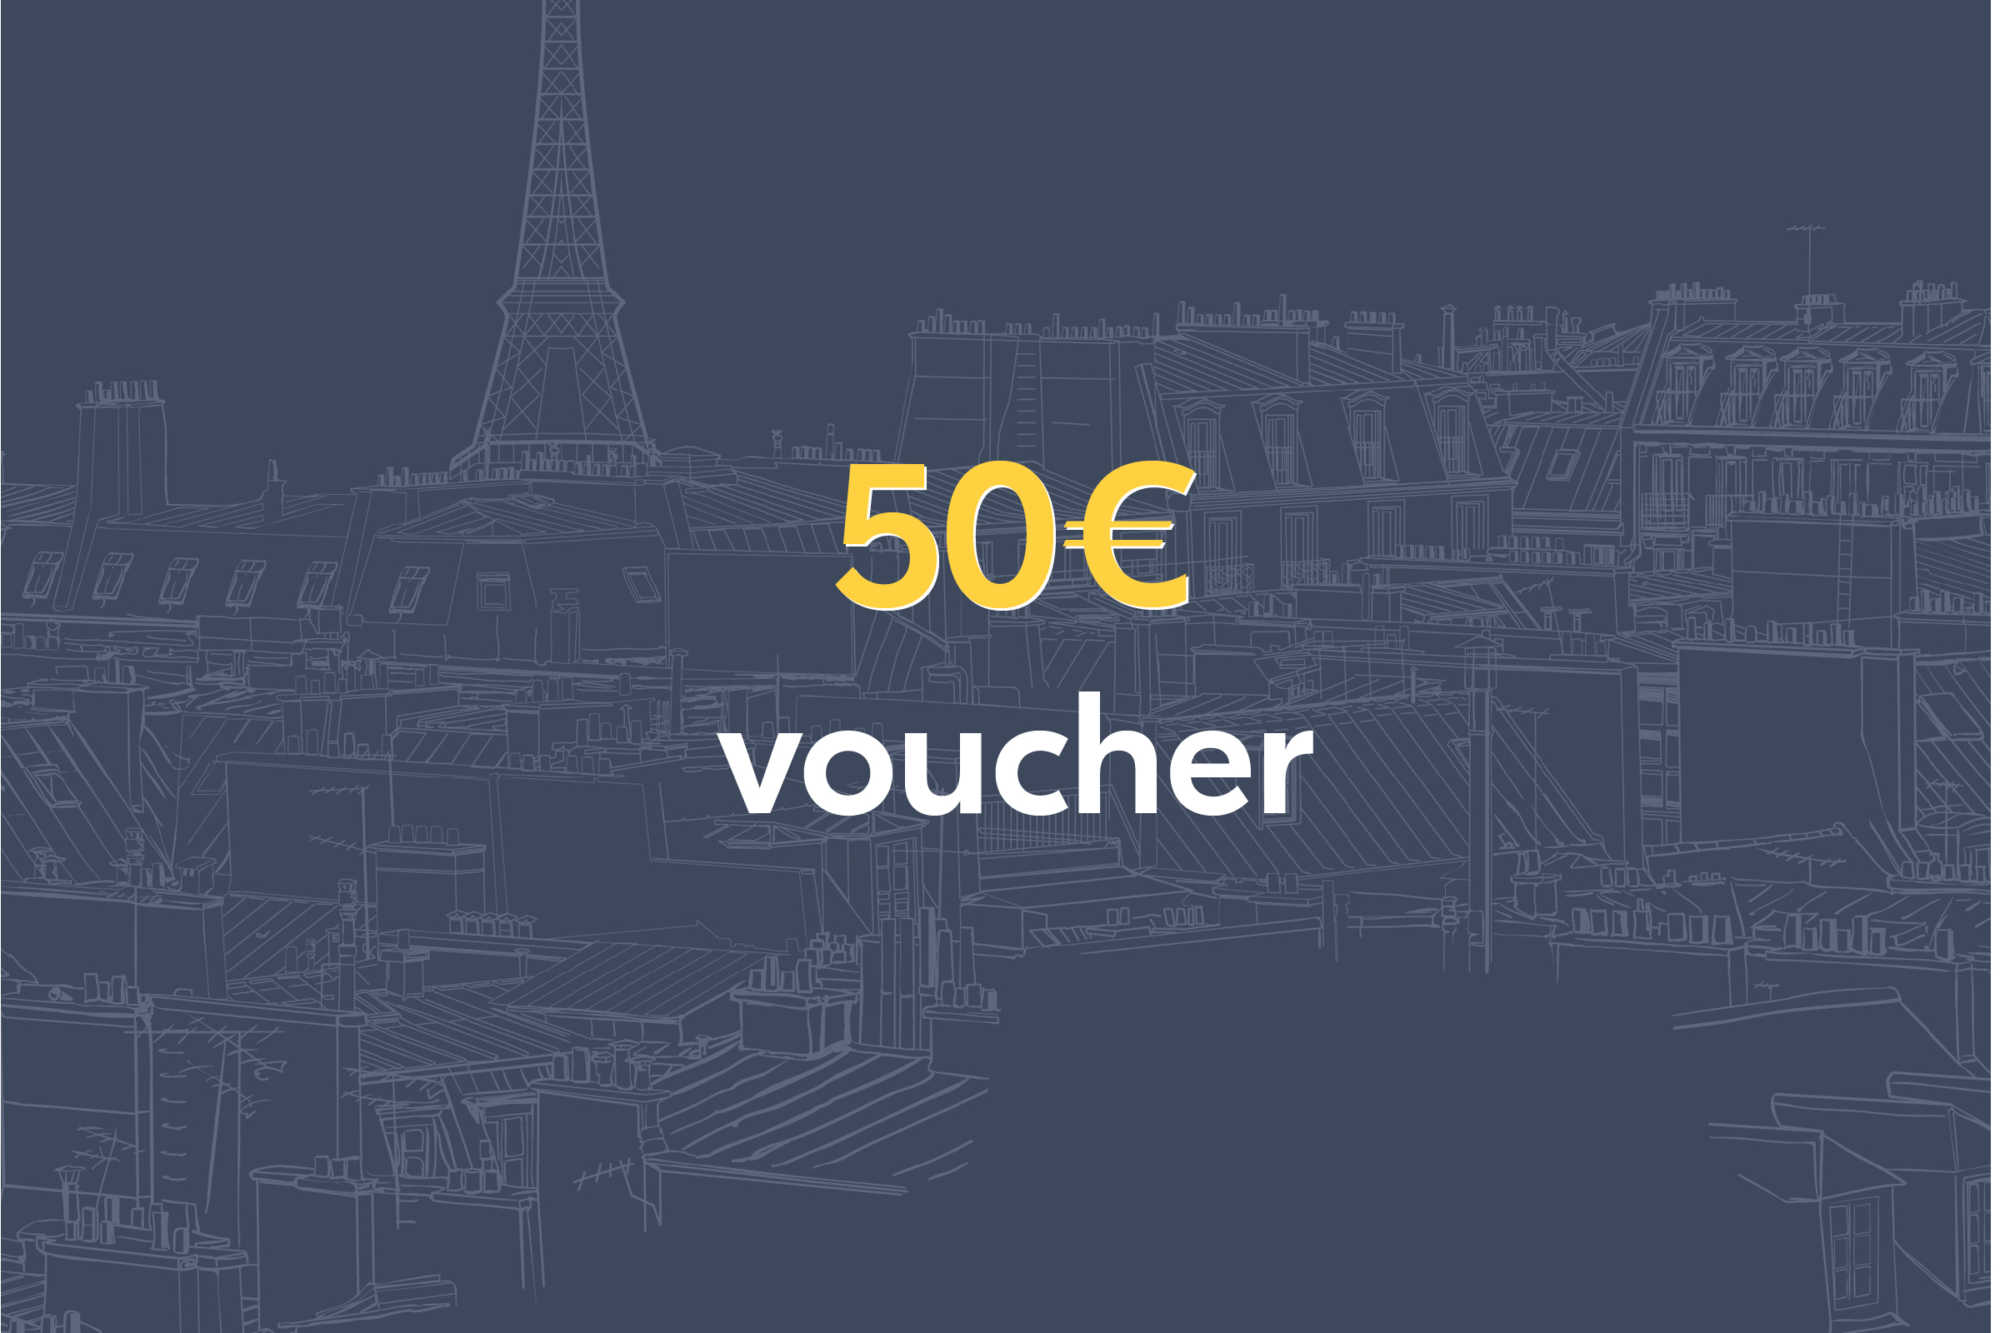 TheWaysBeyond - Voucher 50€